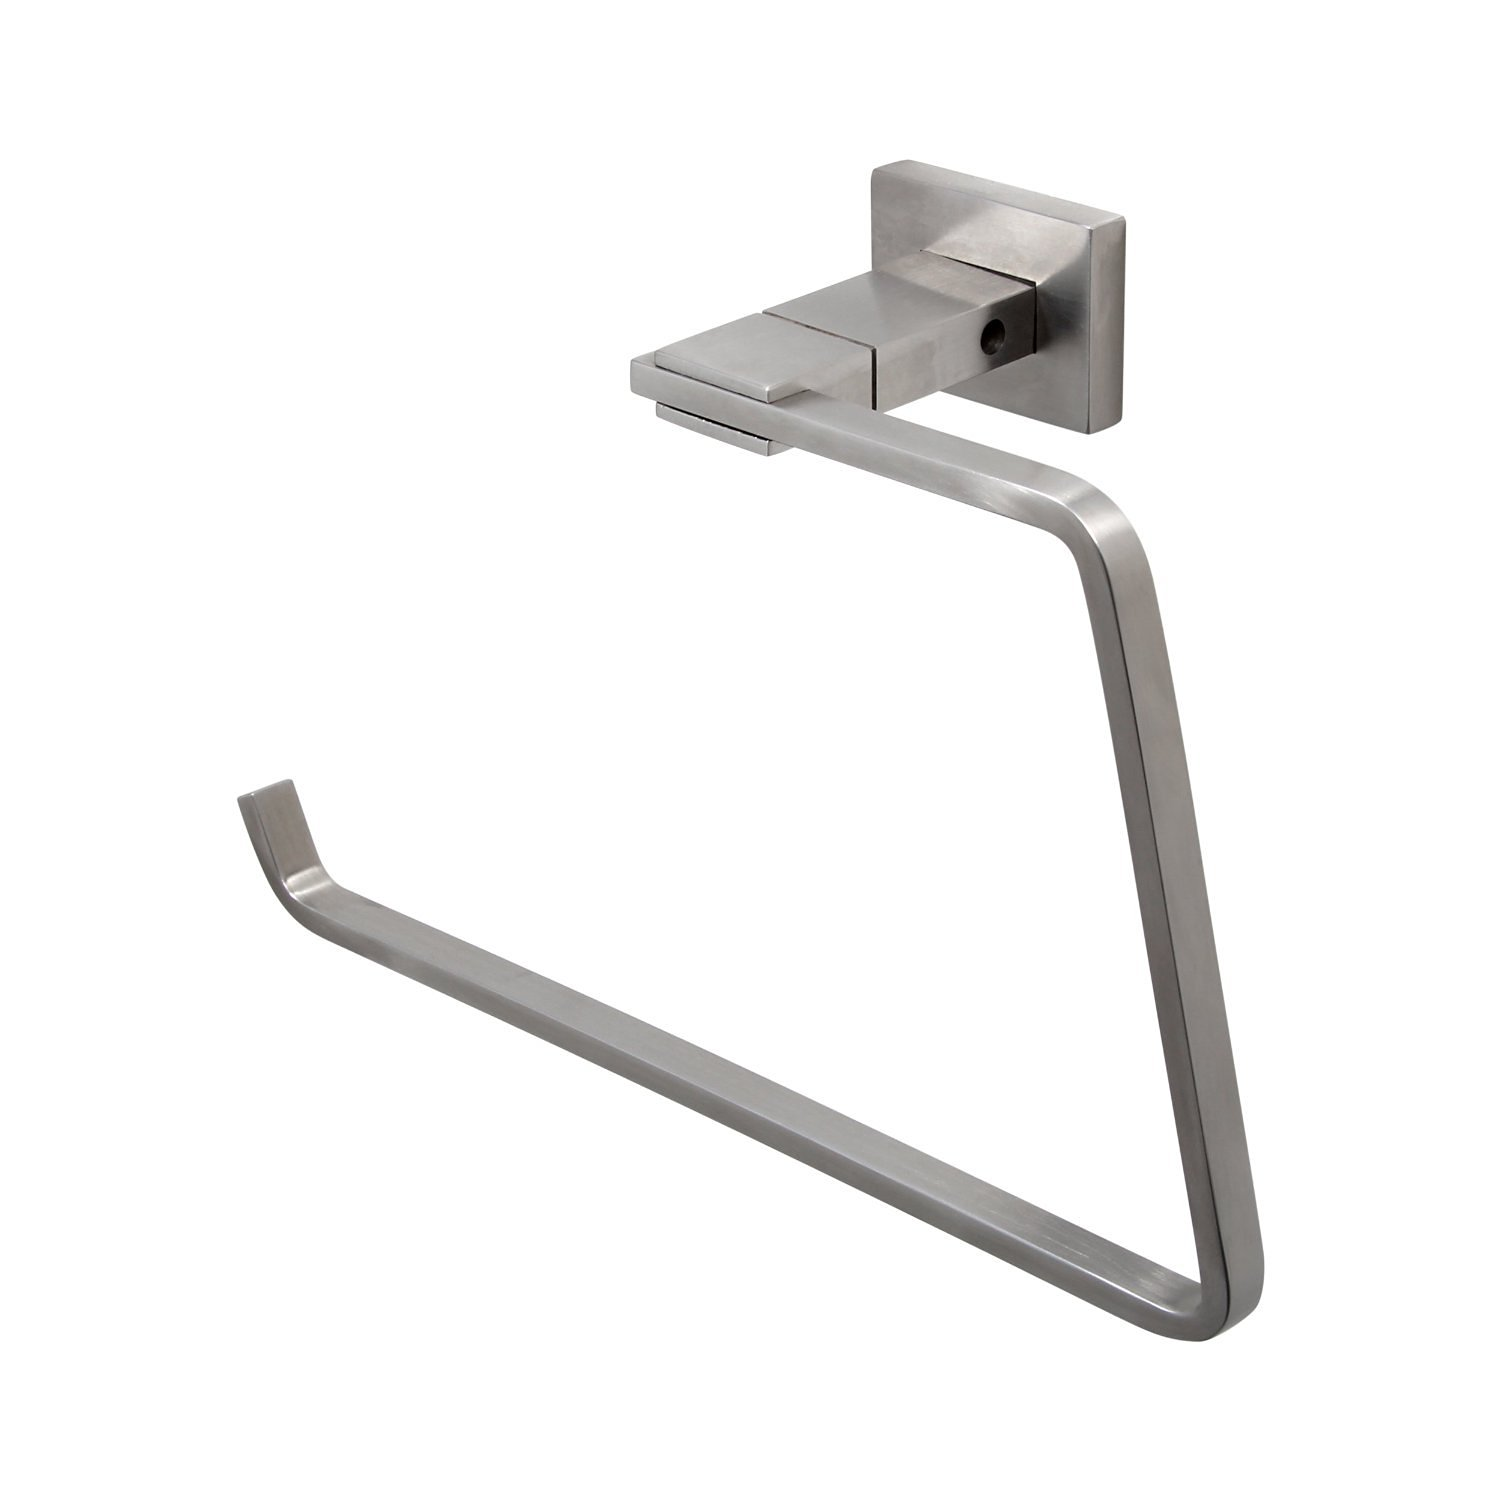 BOANN BNASTR Solid T304 Stainless Steel Towel Ring/Hook